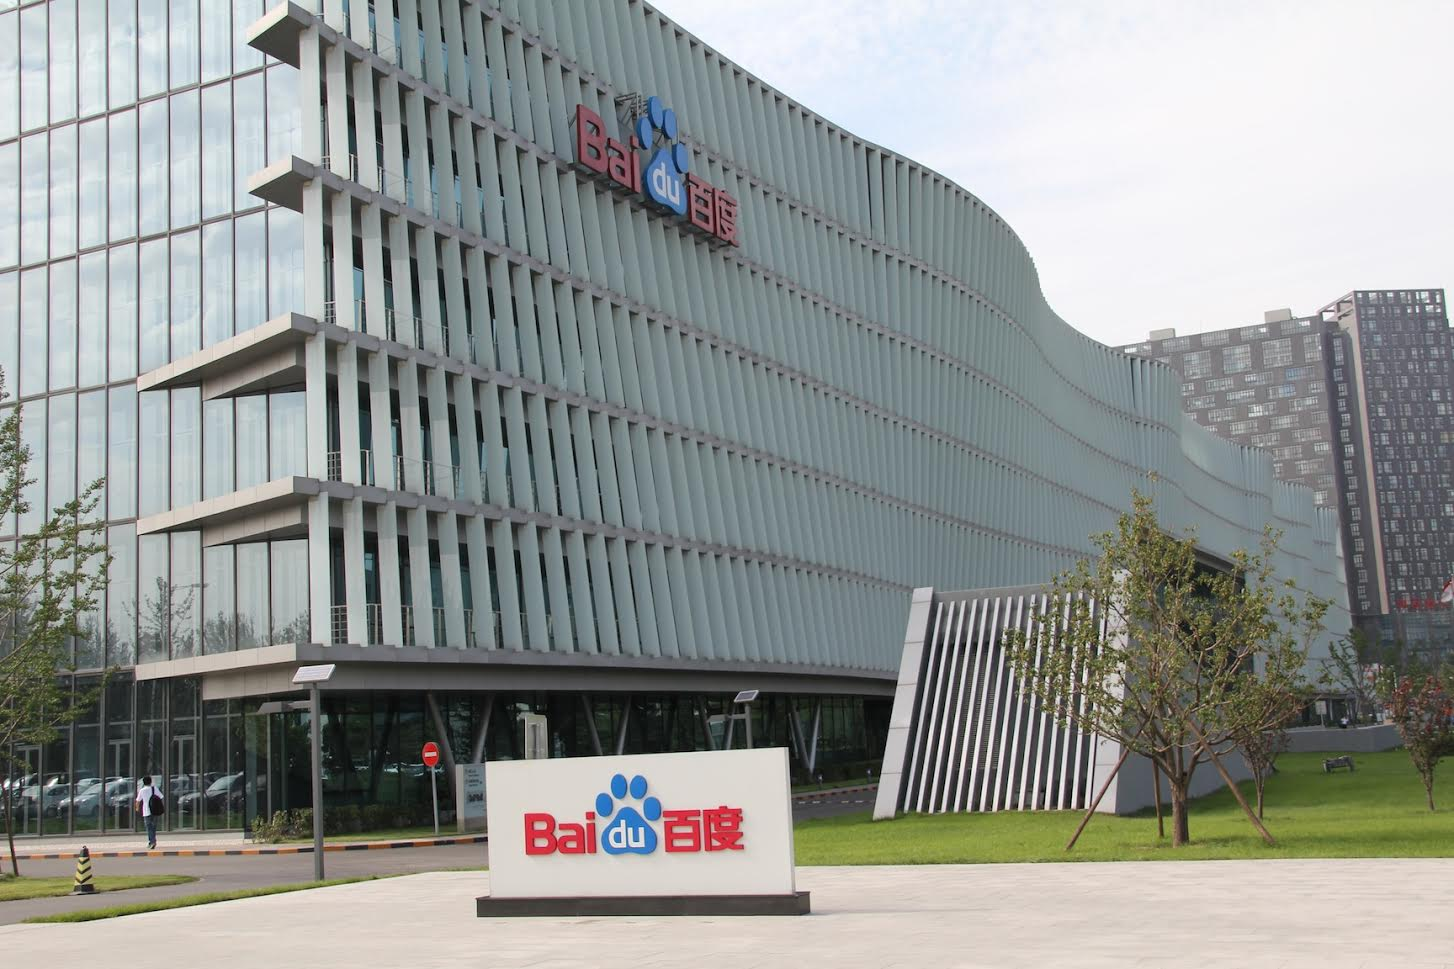 Baidu chief calls for bold moves to 'get back on top'